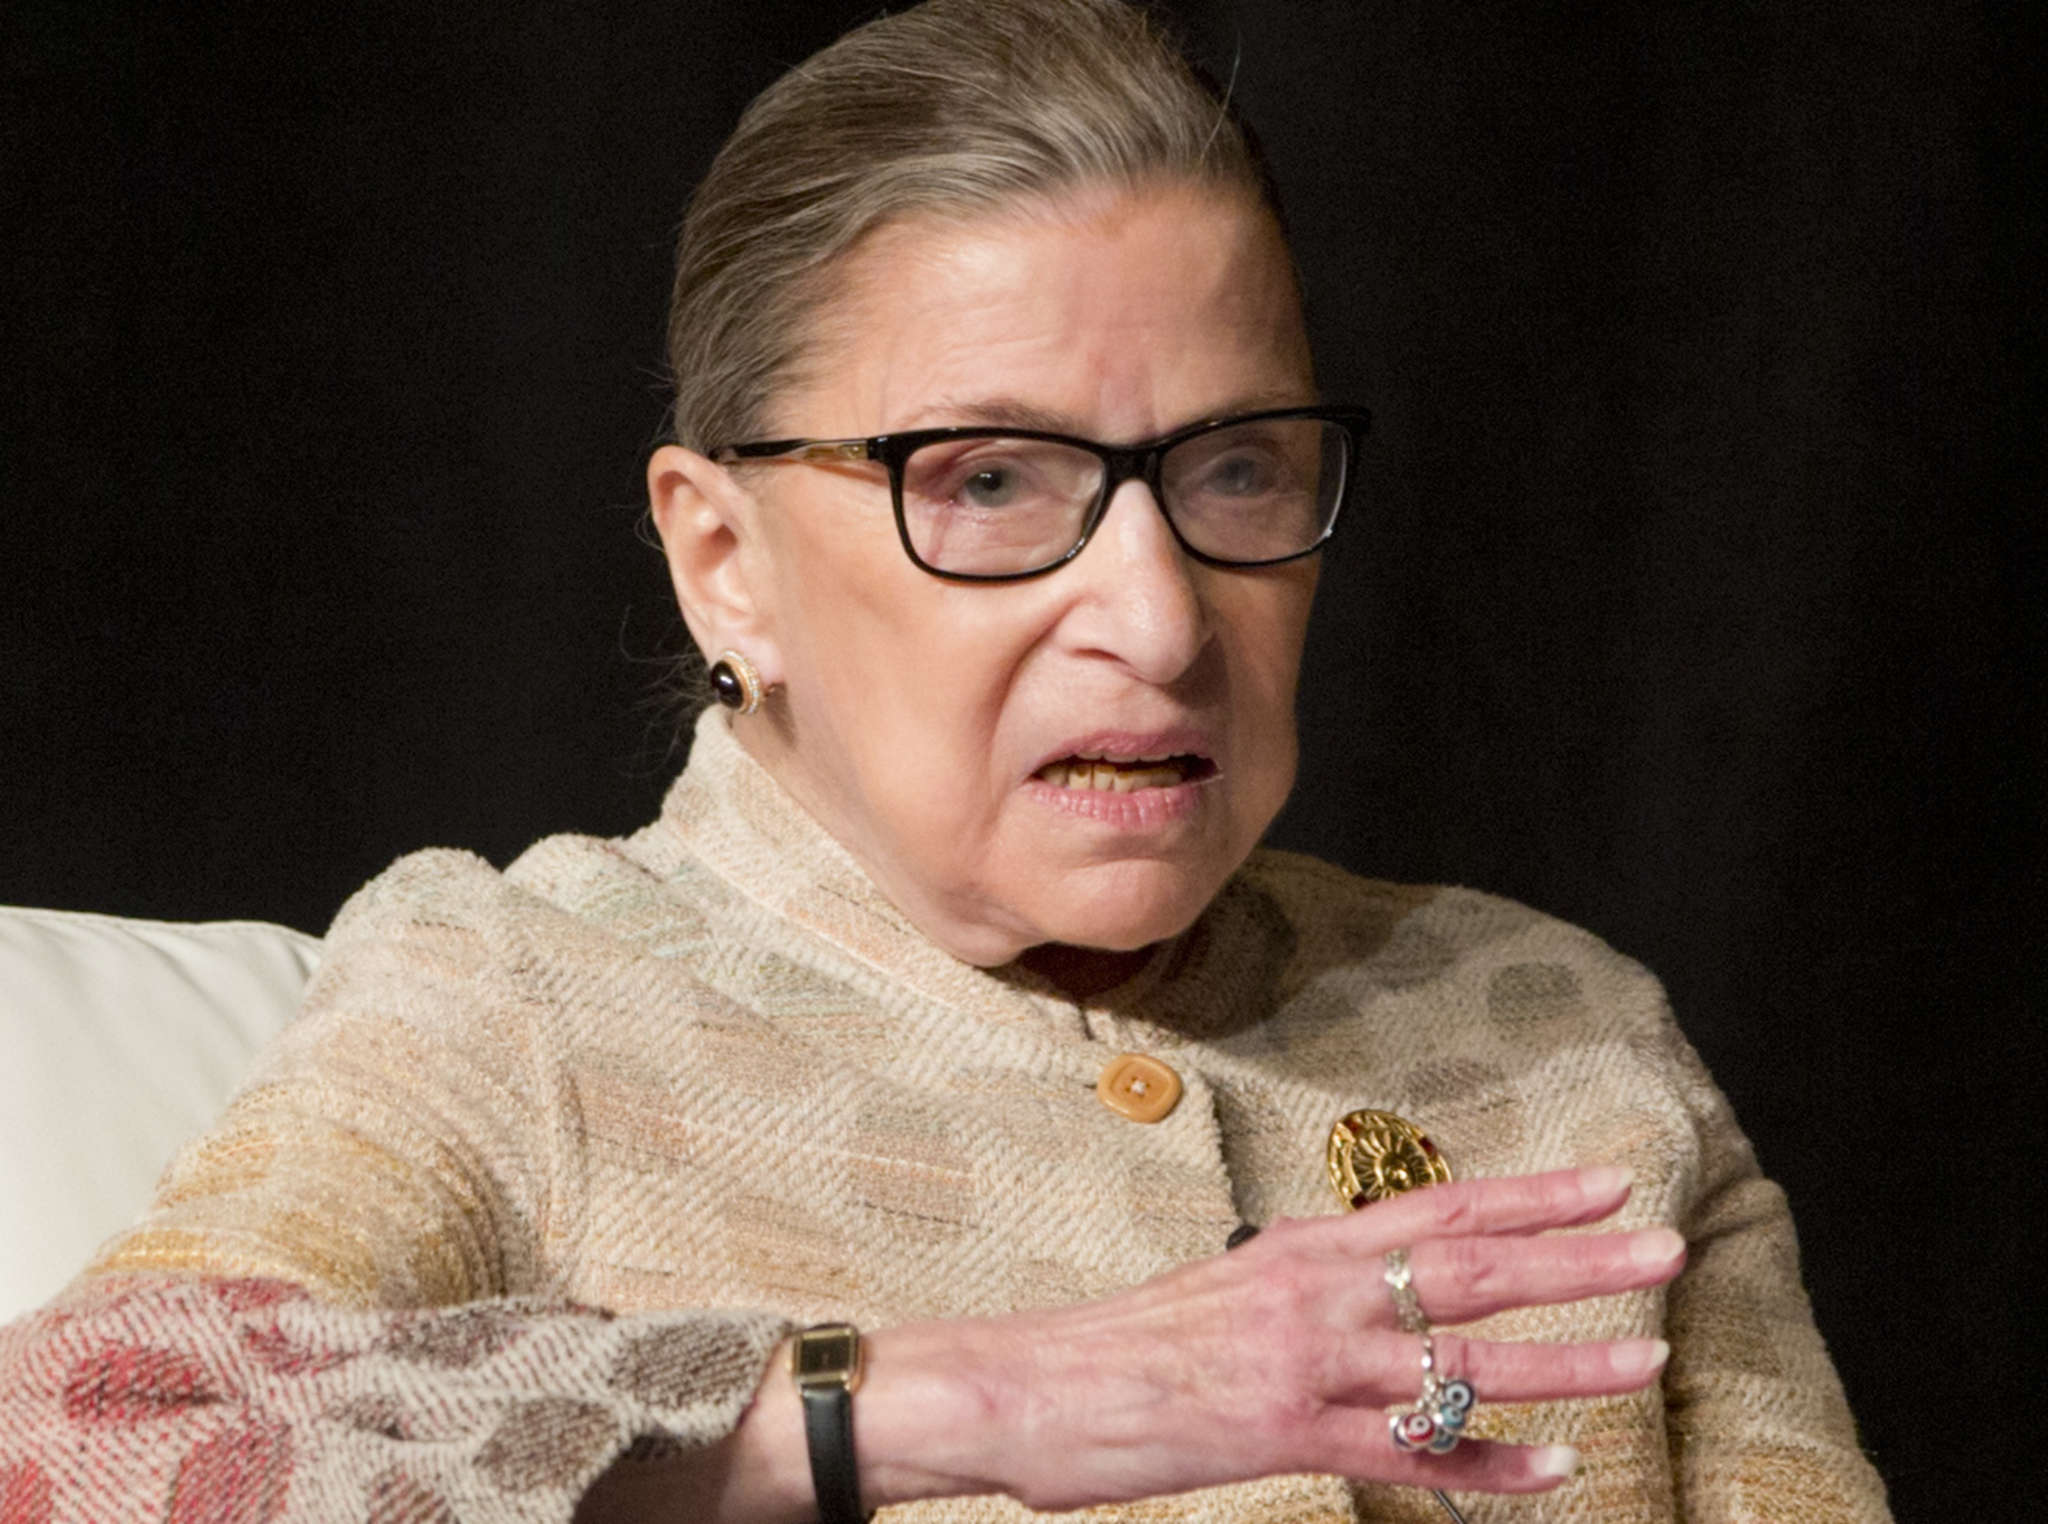 Ruth Bader Ginsburg said she regretted making disparaging remarks about Donald Trump.